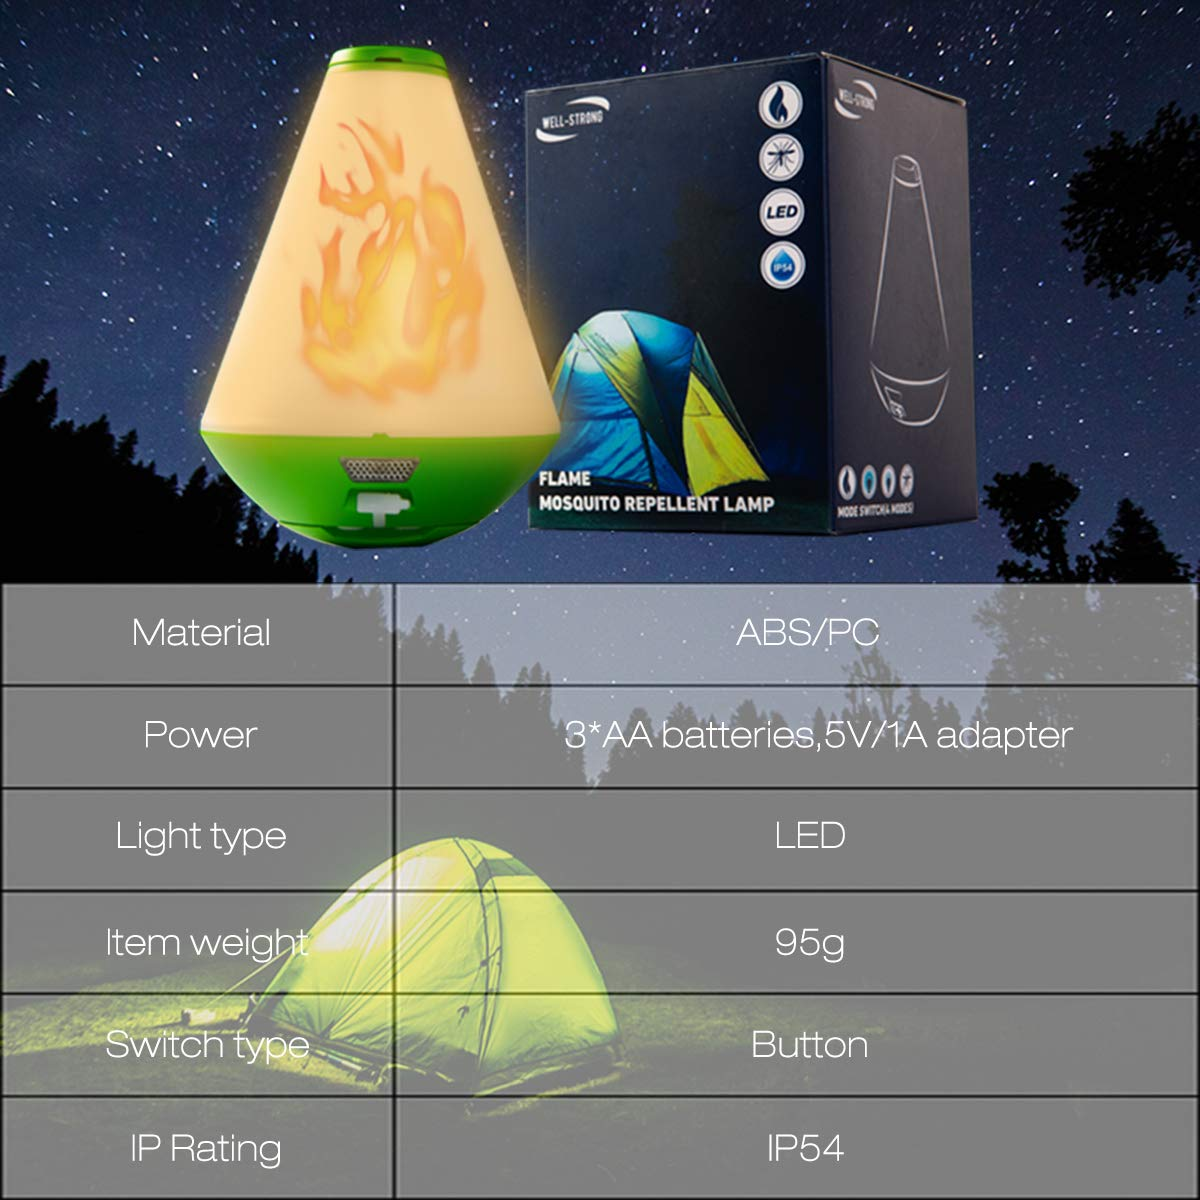 USB Rechargeable Tent Flame Light with Portable Hang Loop for Home Camping WELL-STRONG Simulated Flame Camping Lantern Mosquito Repellent Wave LED Lamp Ourdoor Use